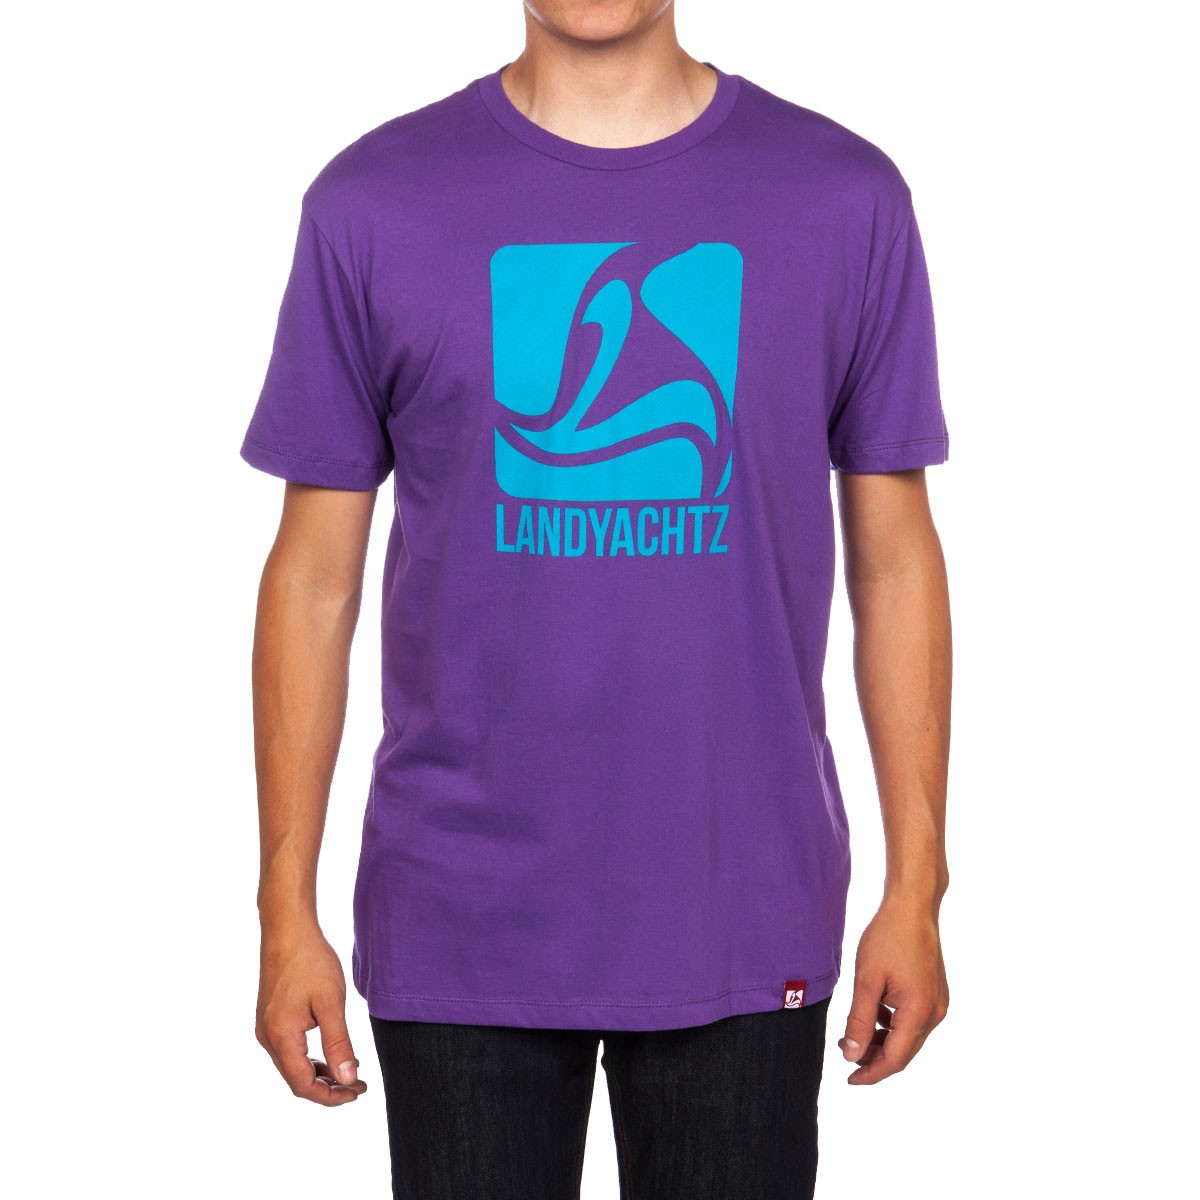 Landyachtz Square Logo T-Shirt - Purple/Blue